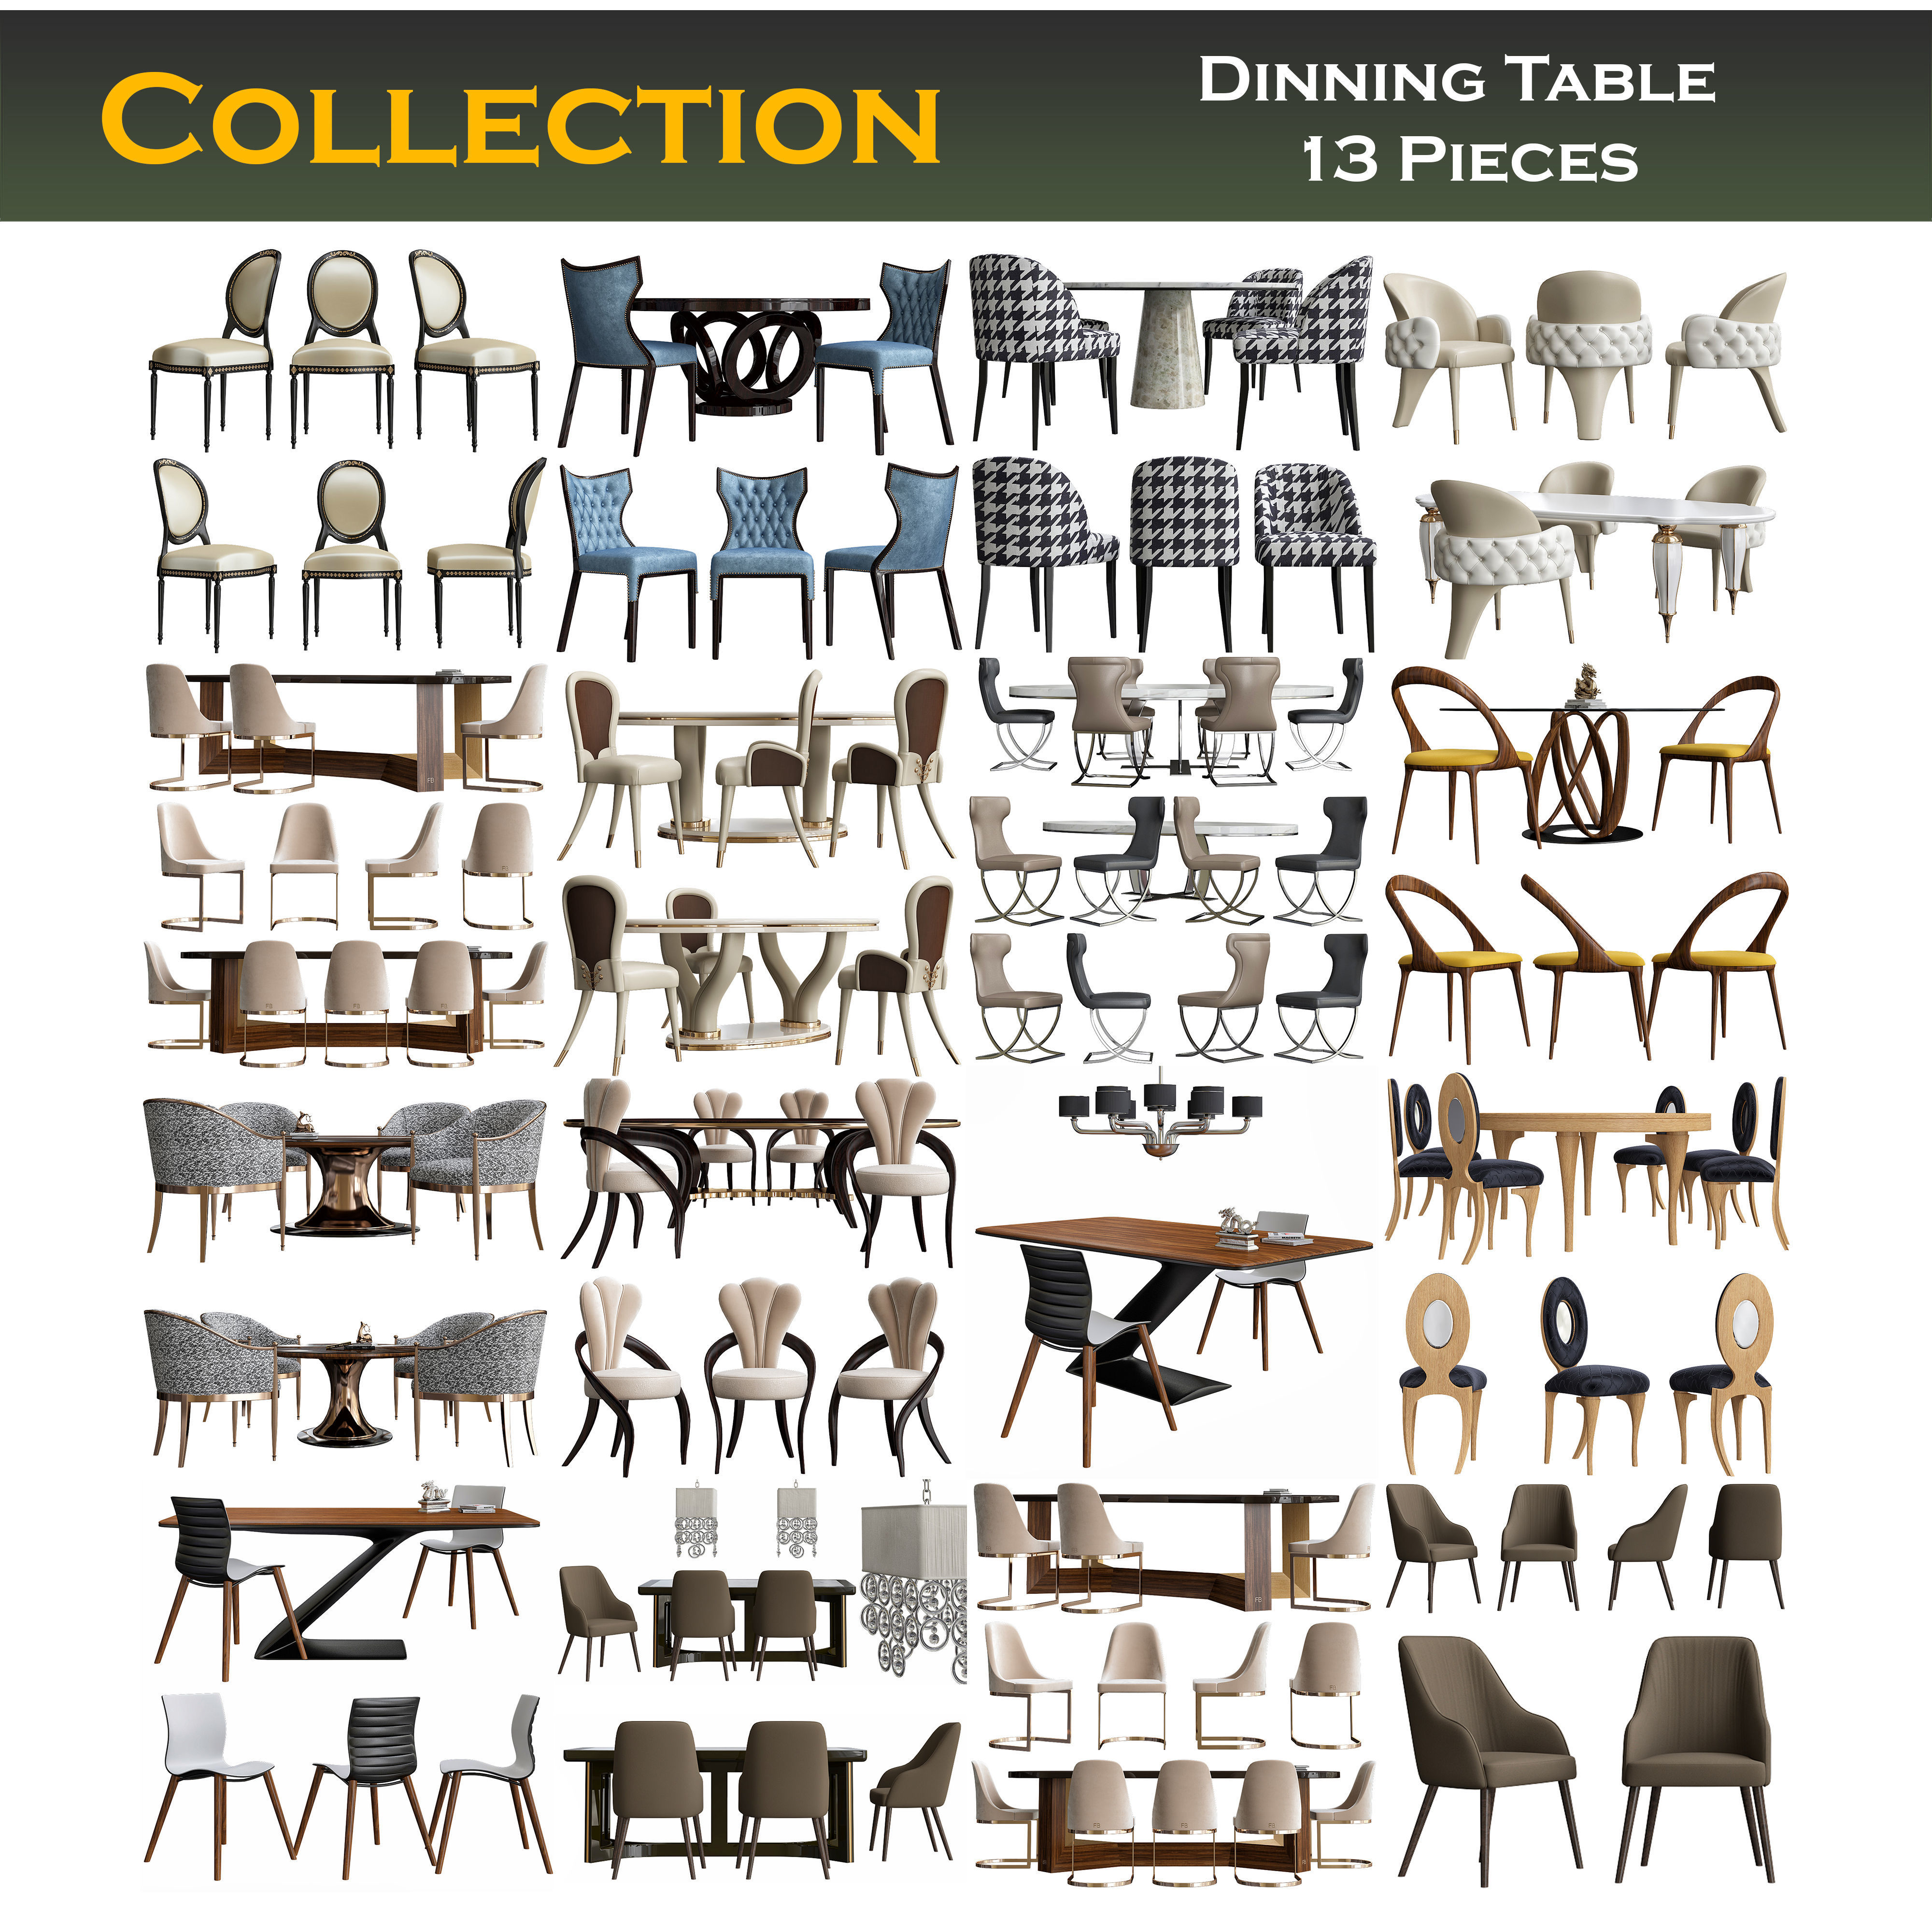 Collection of dining tables 3d model